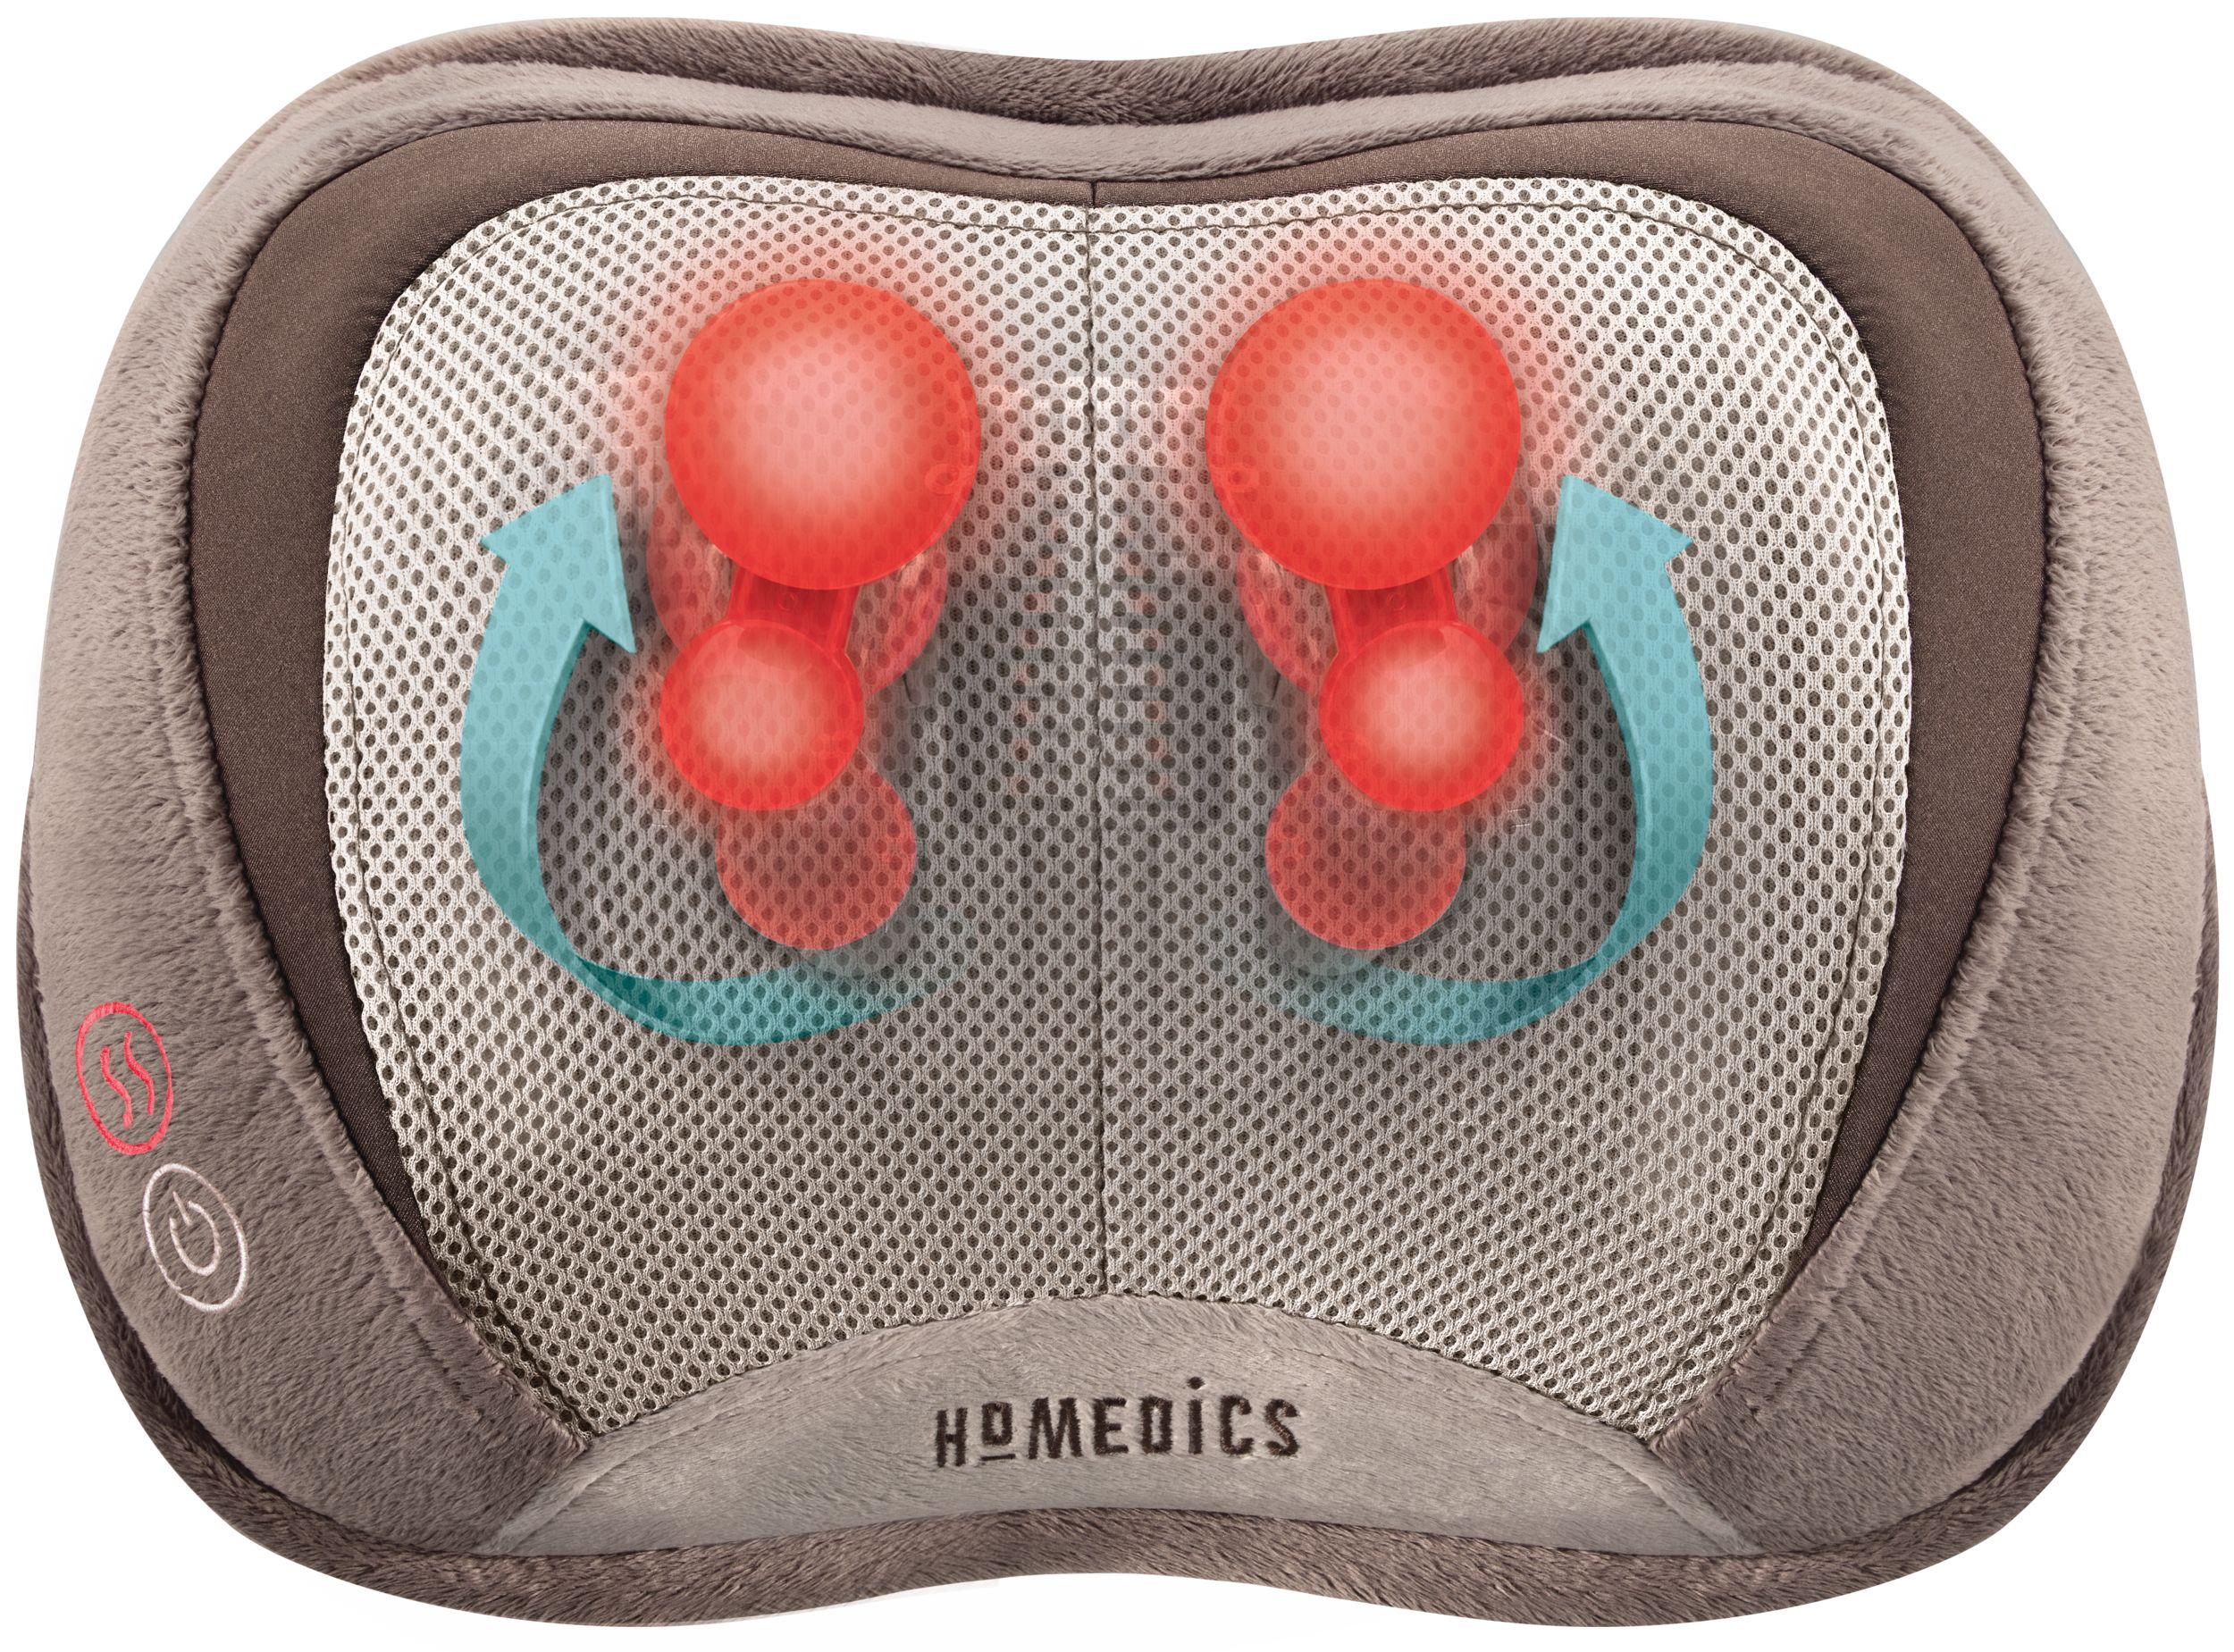 homedics 3d shiatsu and vibration massage pillow with heat deep kneading spherical node rollers ultra modern 3d technology for neck shoulders or